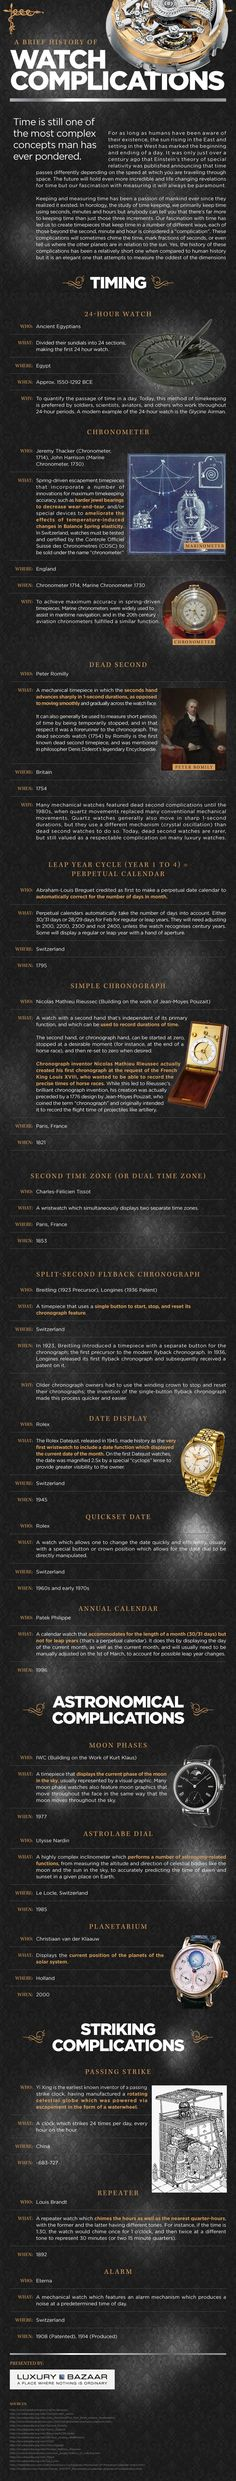 A Brief History of Watch Complications – Infographic - The Luxury Bazaar Blog